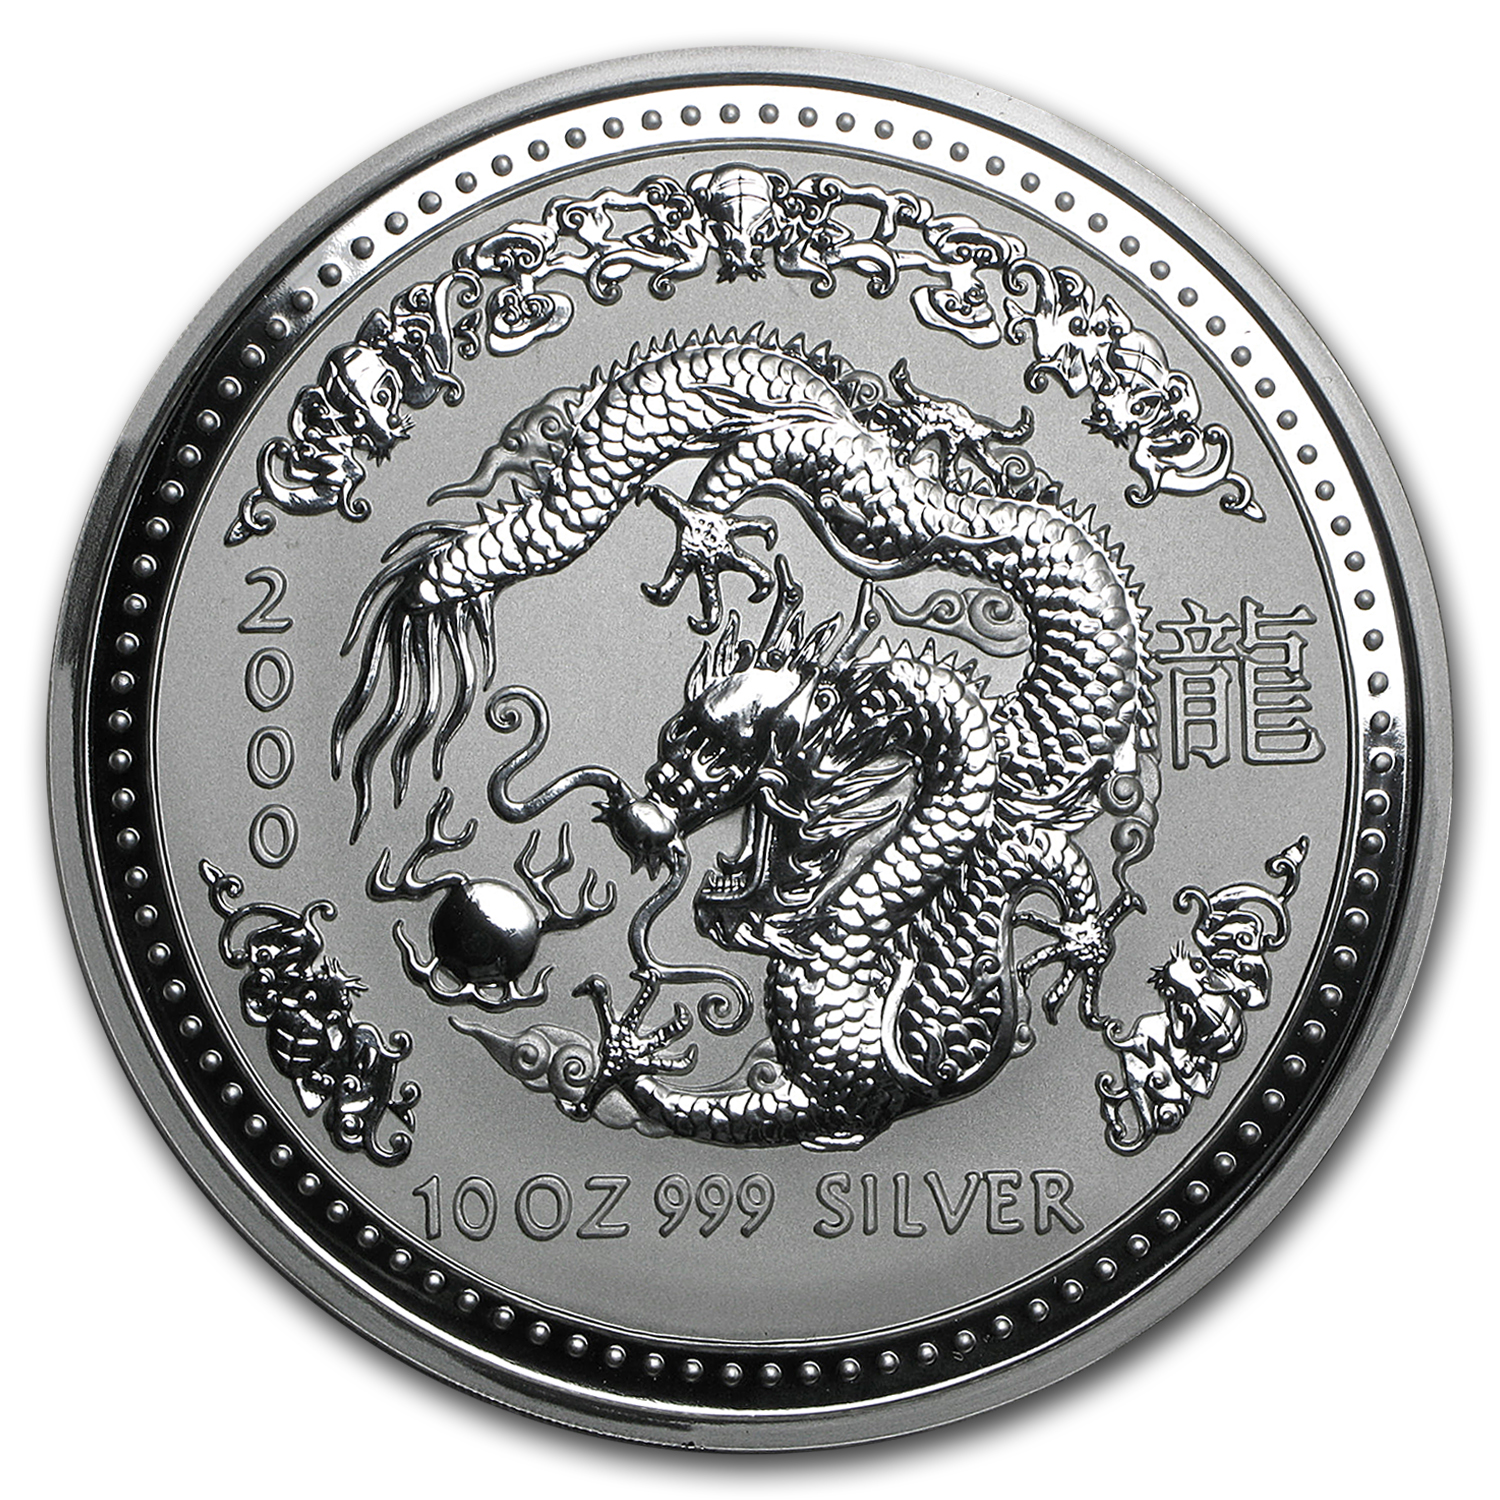 2000 10 oz Silver Lunar Year of the Dragon (Series I)